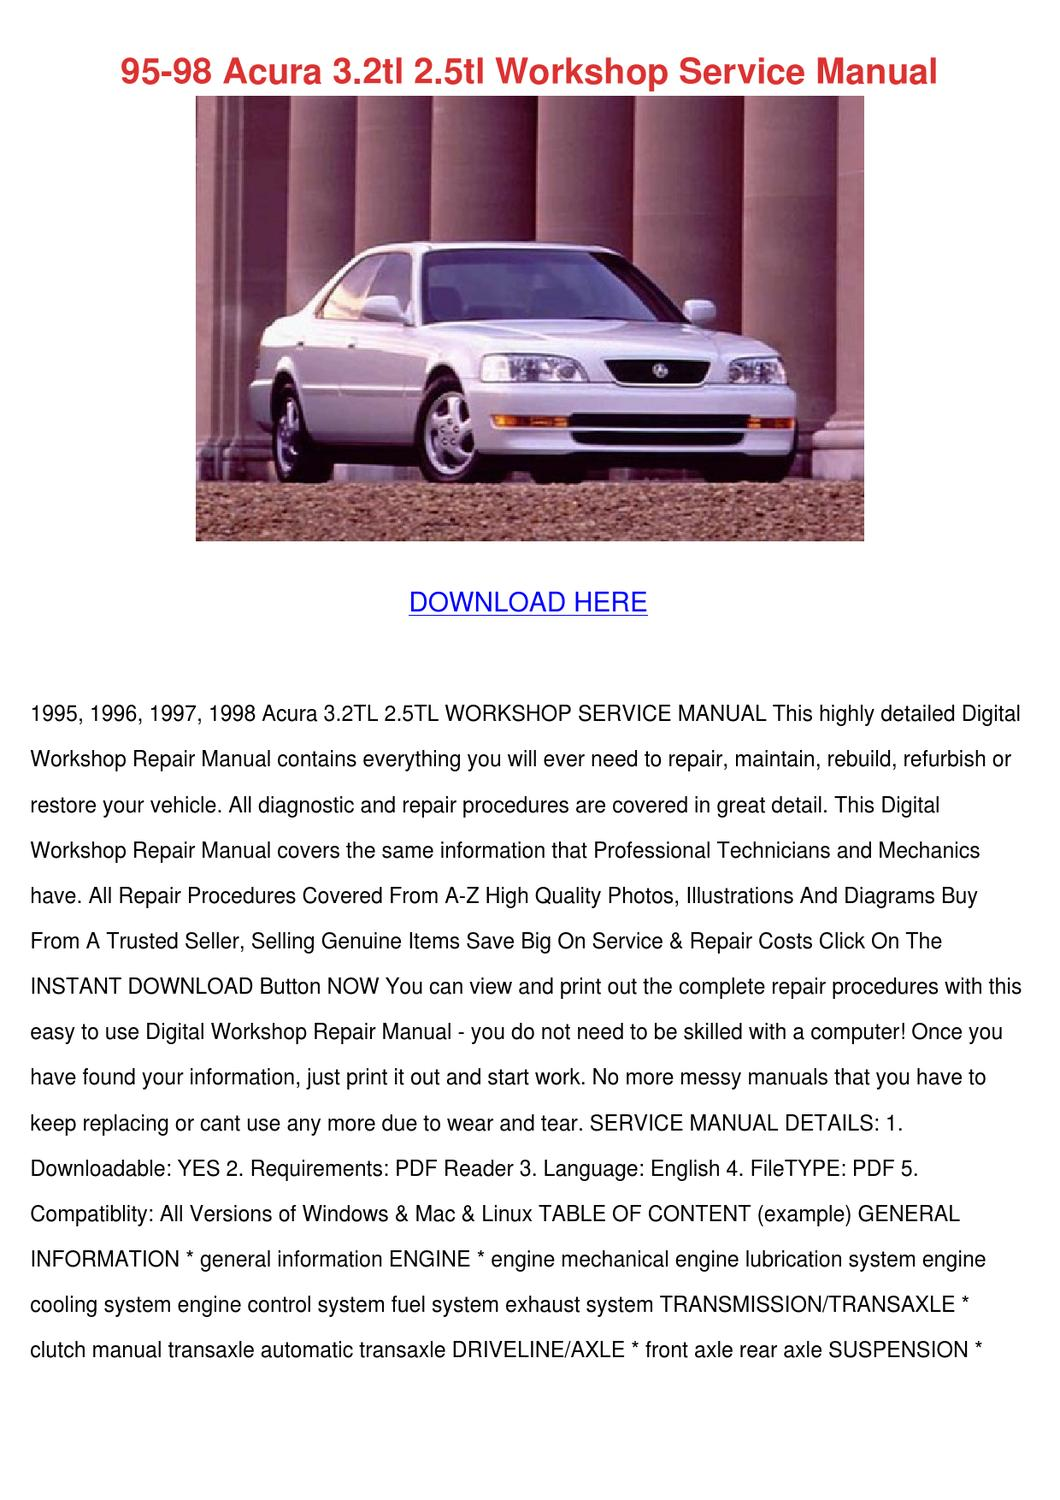 hight resolution of 95 98 acura 32tl 25tl workshop service manual by micaela luria issuu